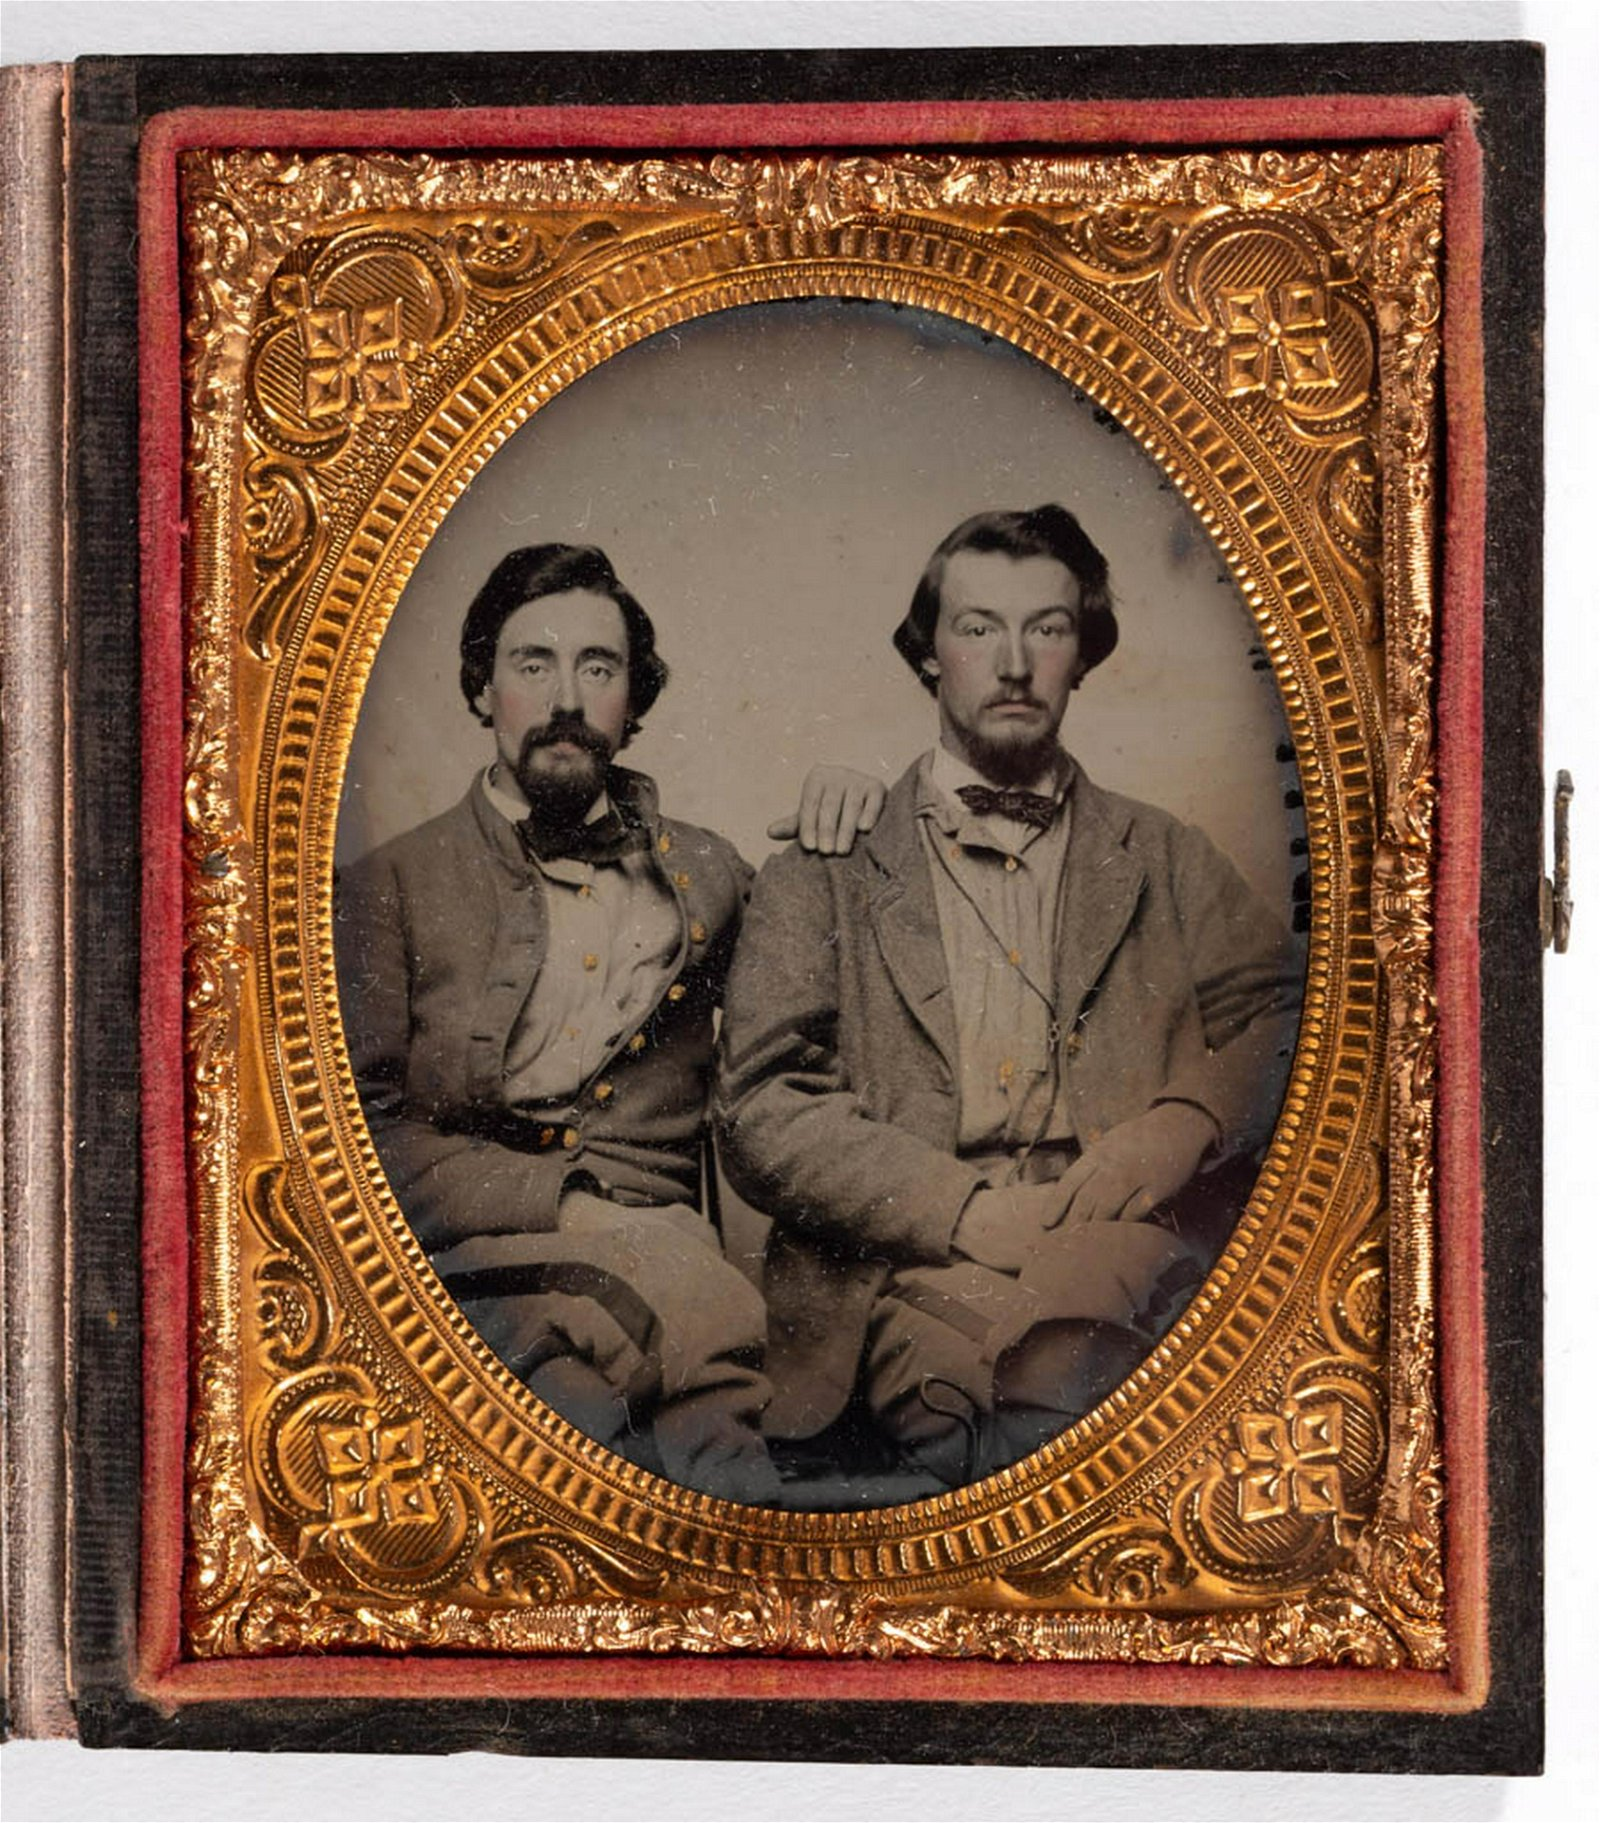 CONFEDERATE CIVIL WAR SOLDIER SIXTH-PLATE AMBROTYPE